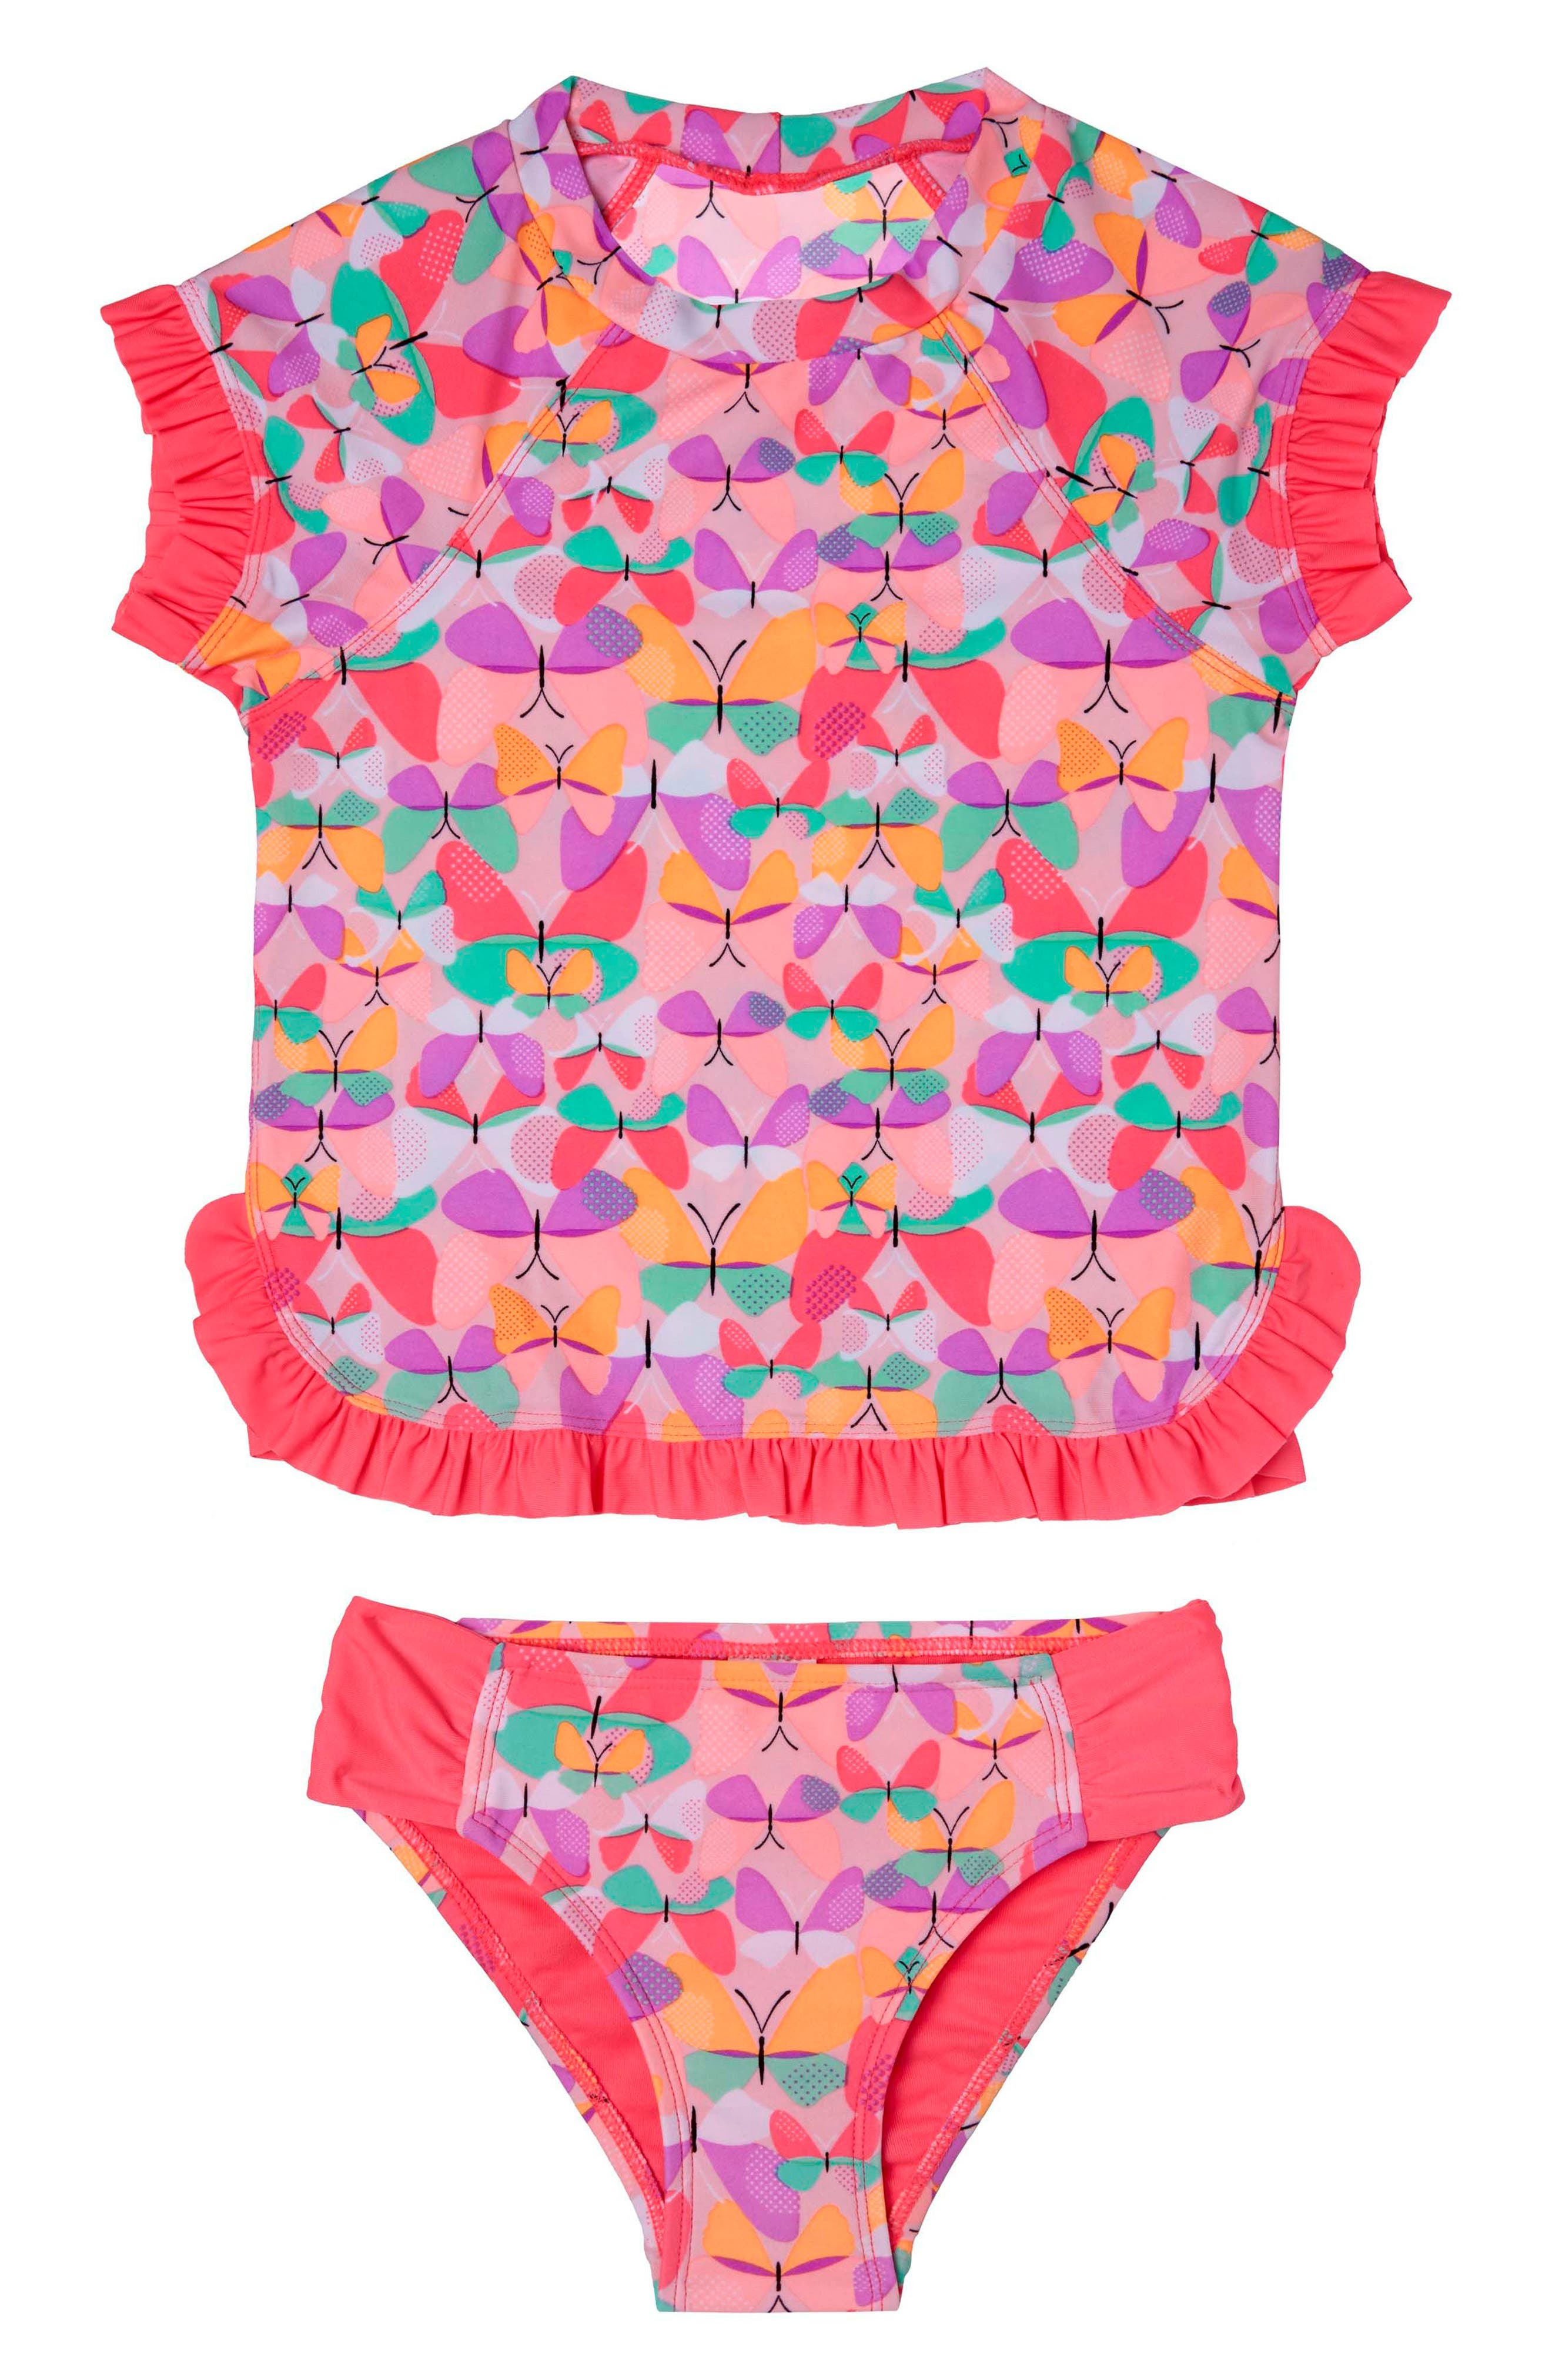 Alternate Image 1 Selected - Hula Star Butterfly Cutie Two-Piece Rashguard Swimsuit (Toddler Girls & Little Girls)